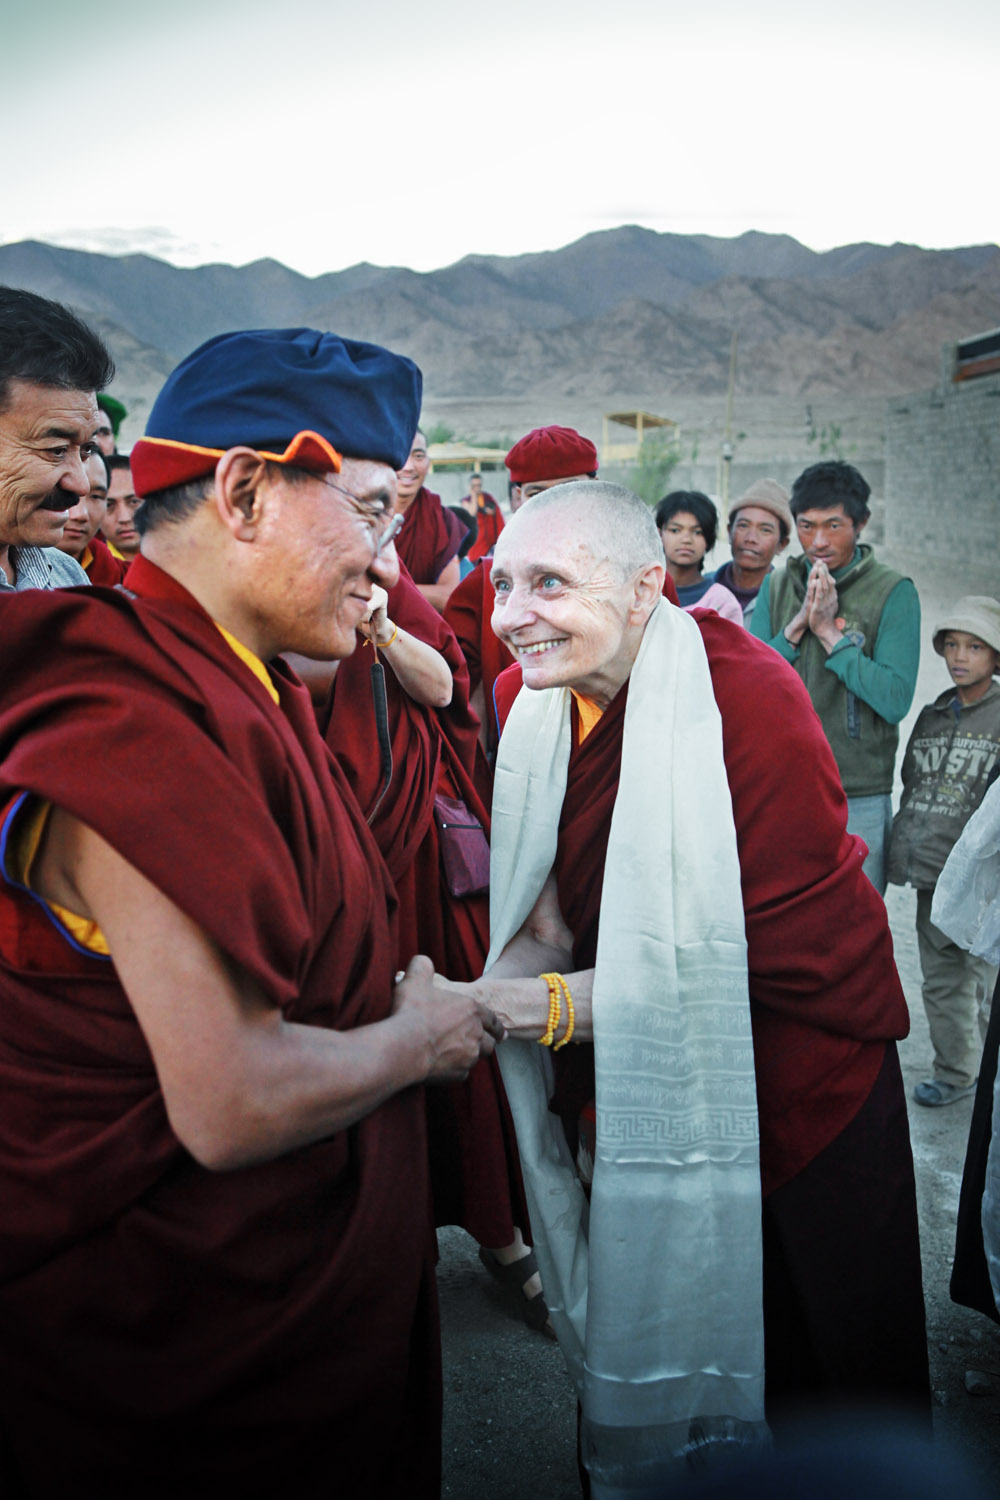 H.H. greeting Jetsunma at Druk White Lotus school, Shey, Ladakh